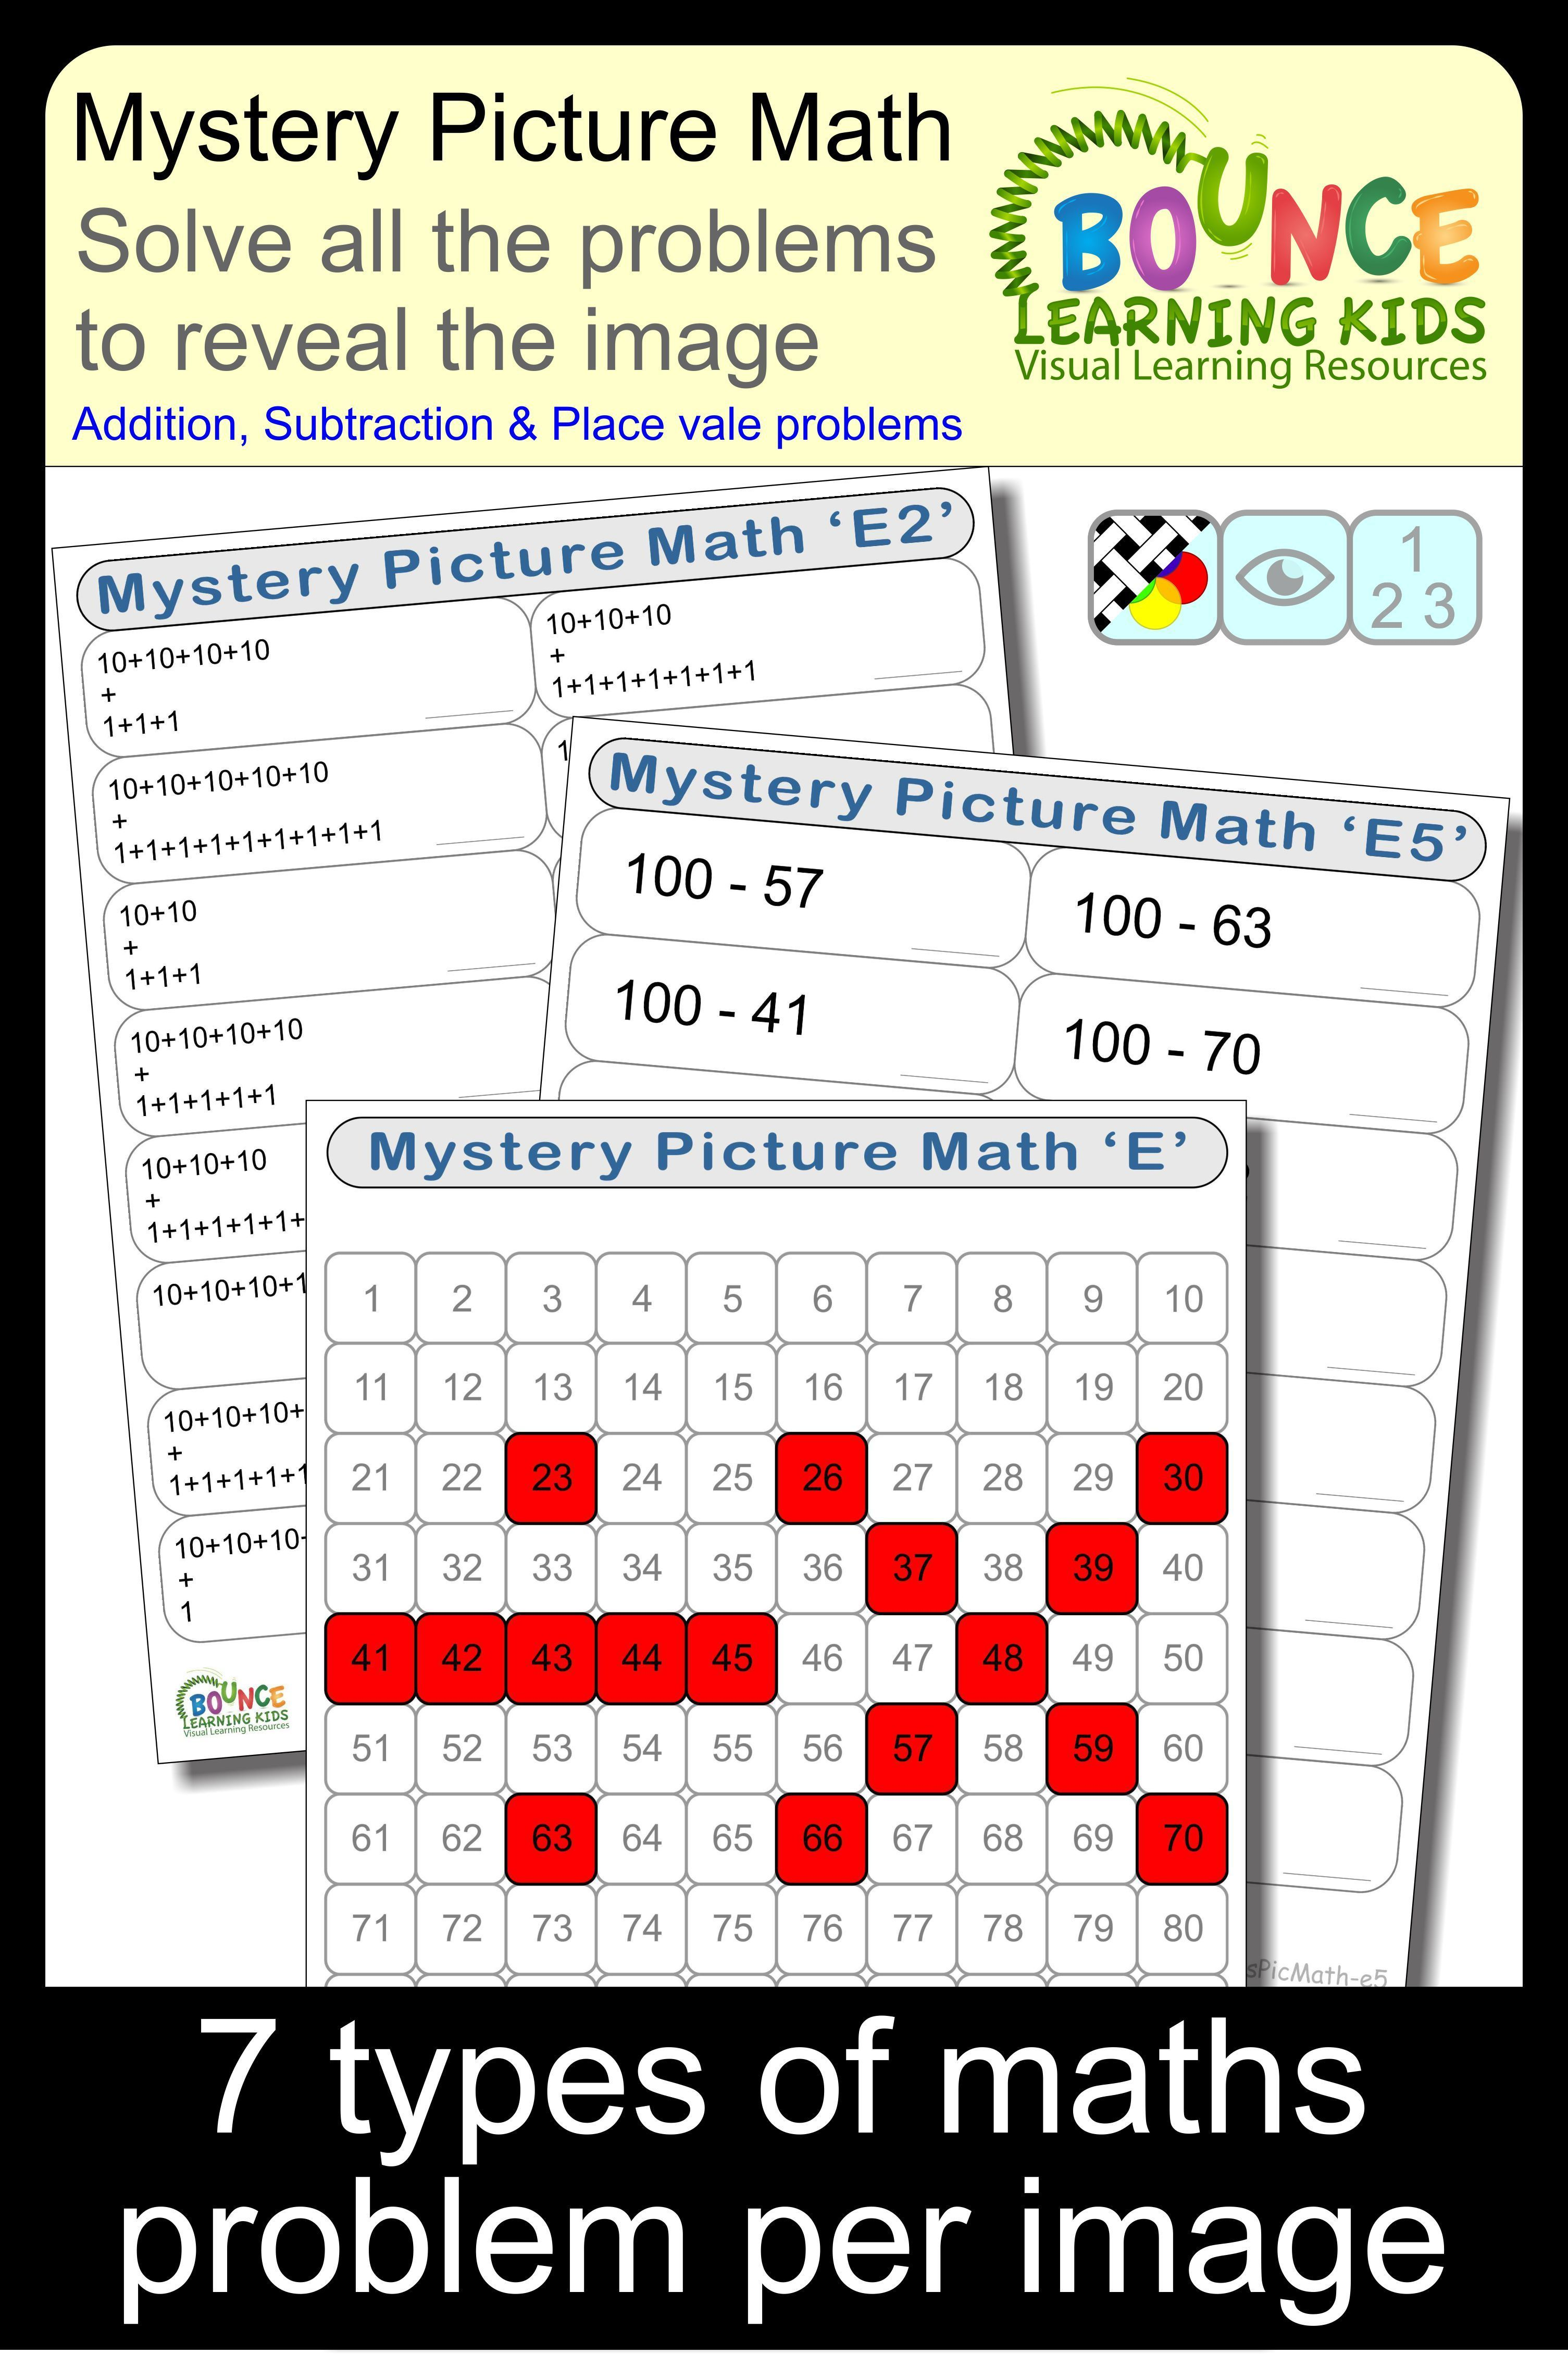 Mystery Picture Math E Solve The Math Problems To Reveal